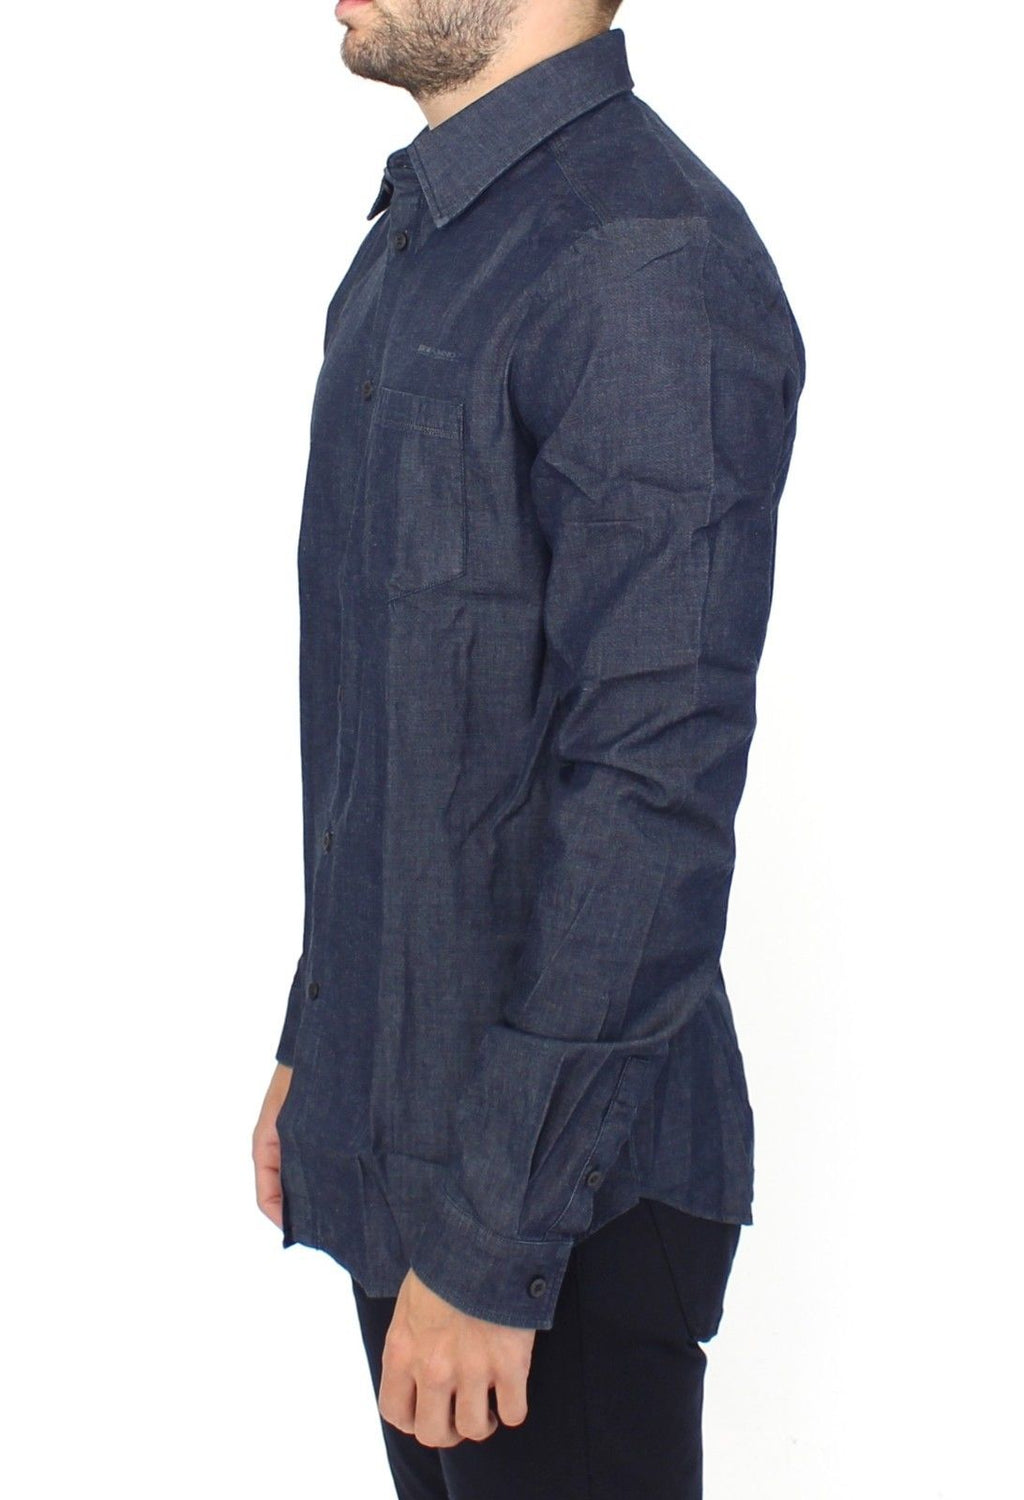 Blue Stretch Denim Jeans Cotton Casual Shirt